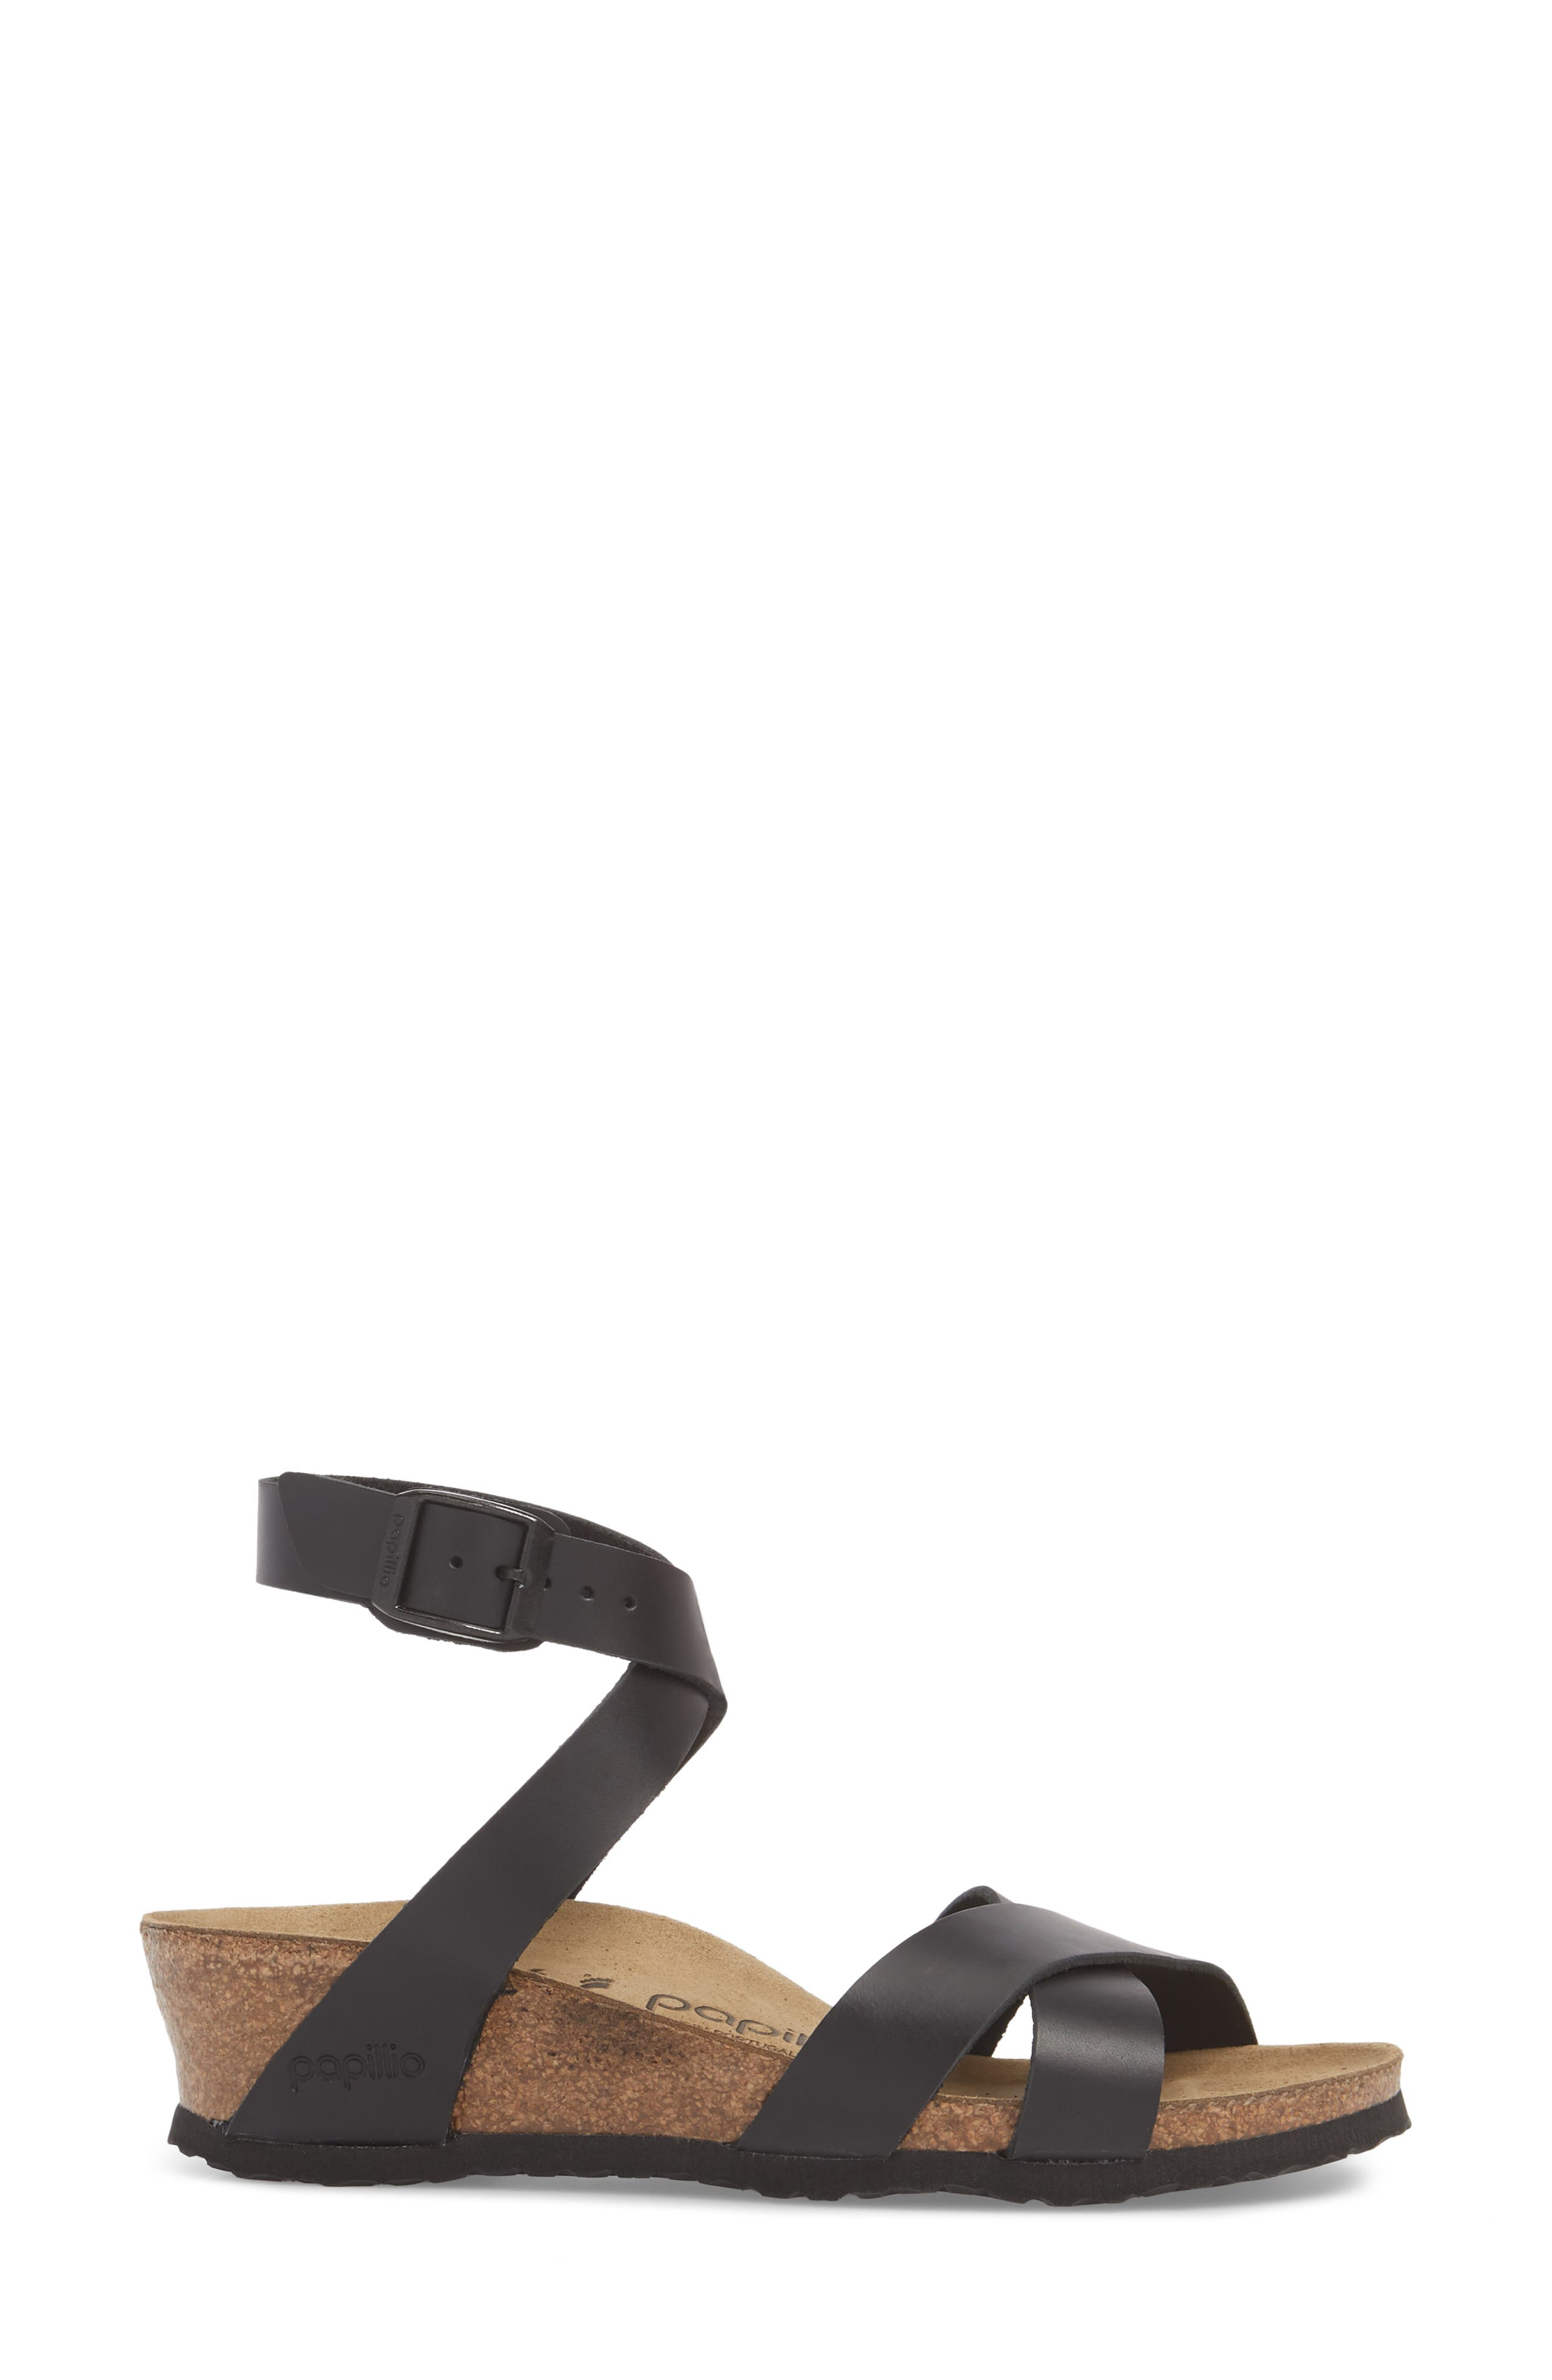 Papillio by Birkenstock Lola Wedge Sandal,                             Alternate thumbnail 3, color,                             Black Leather